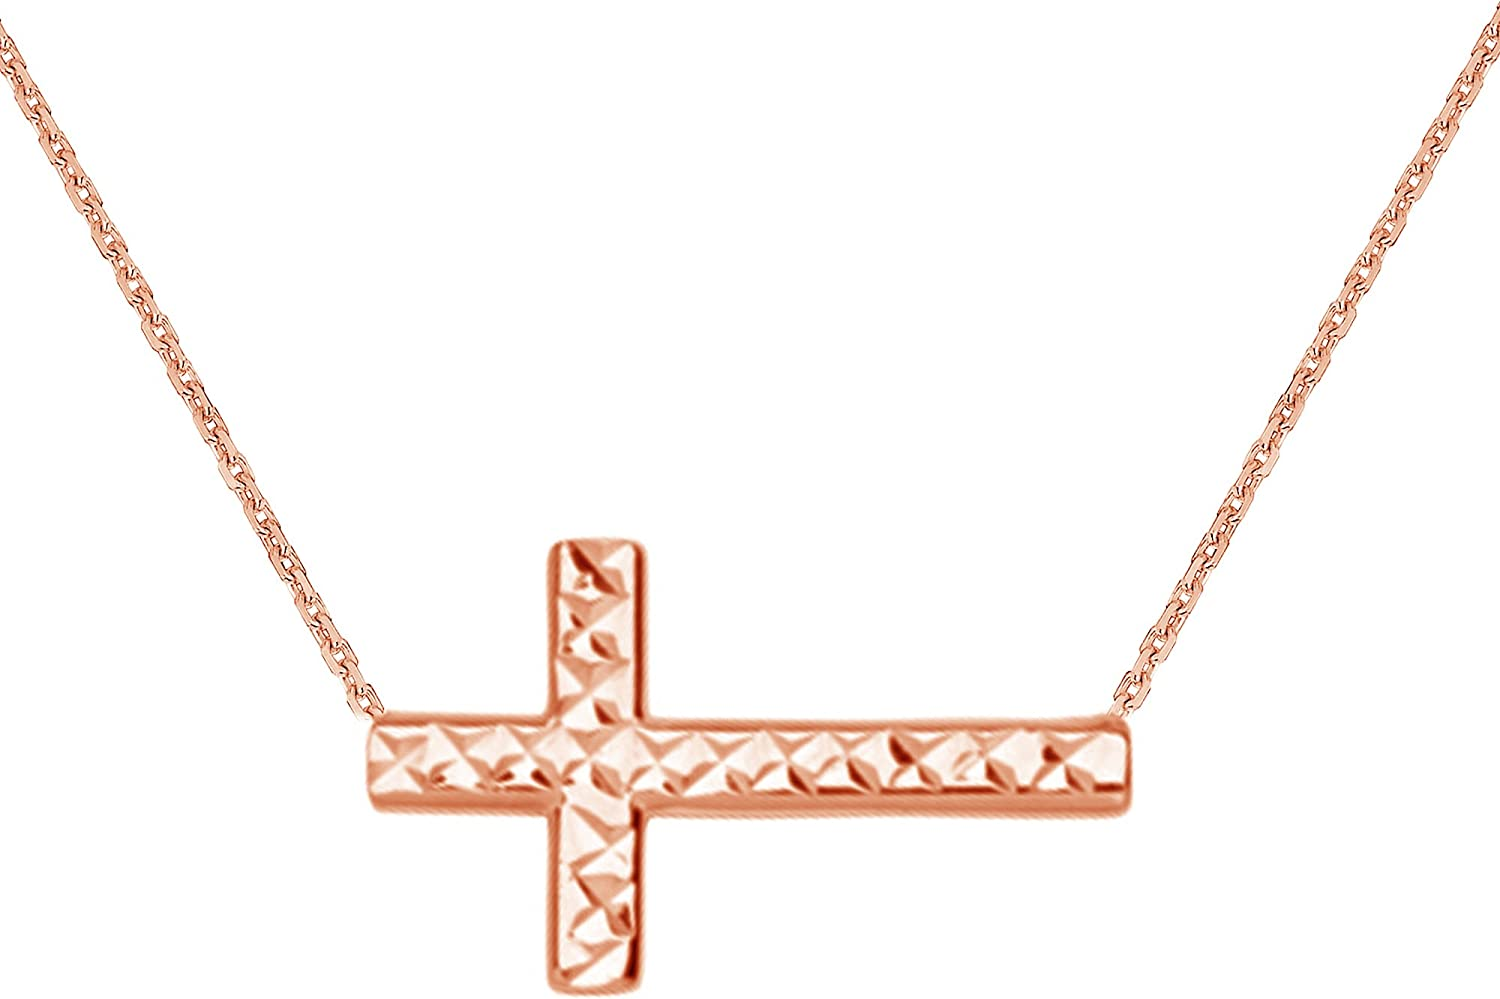 Ritastephens 14K Gold Sideways Reversible Shiny Diamond-cut Cross Necklace Adjustable Chain 16-18 Inches (Yellow, Pink, or White)